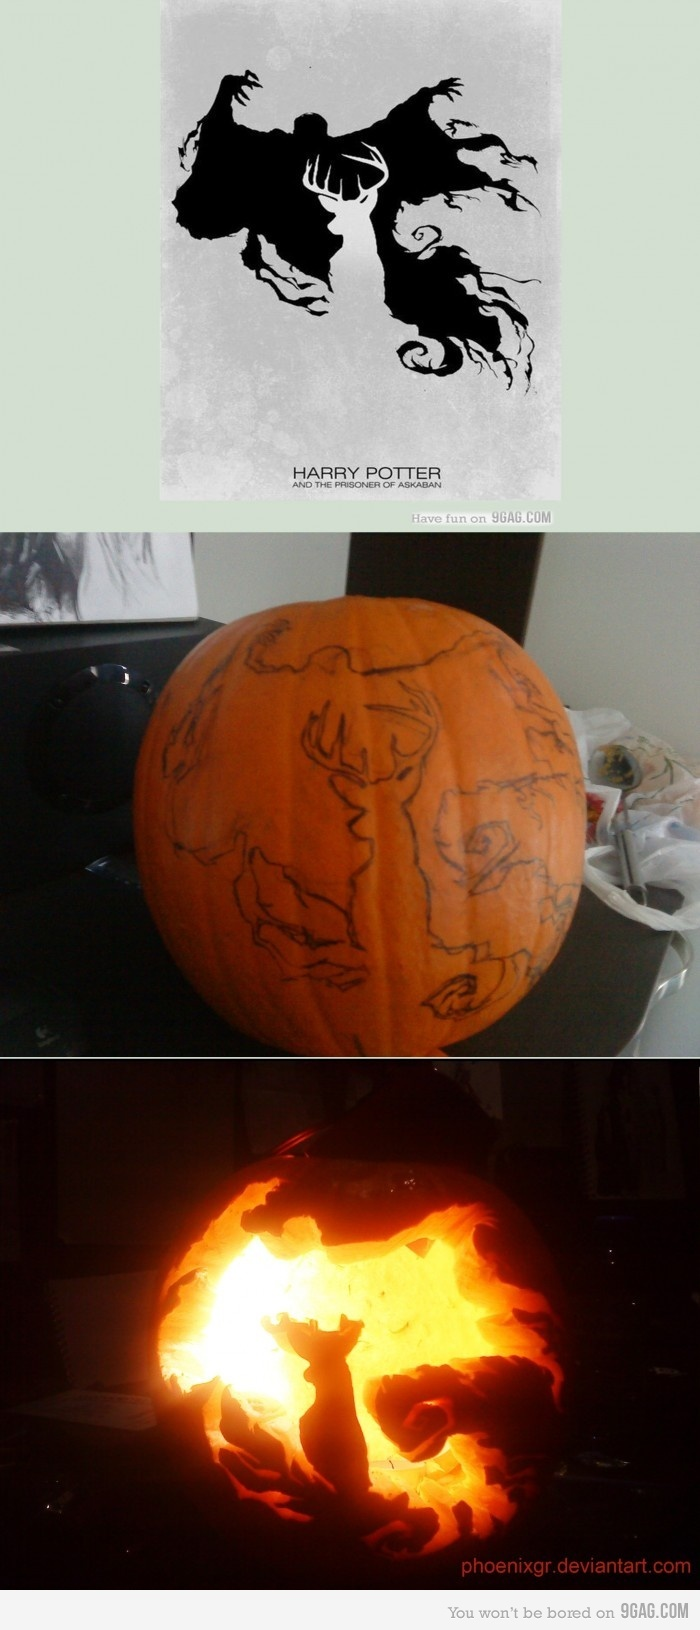 Harry Potter Dementor and Stag Pumpkin. I would probably swap it and outline the dementor so the patronus is the light